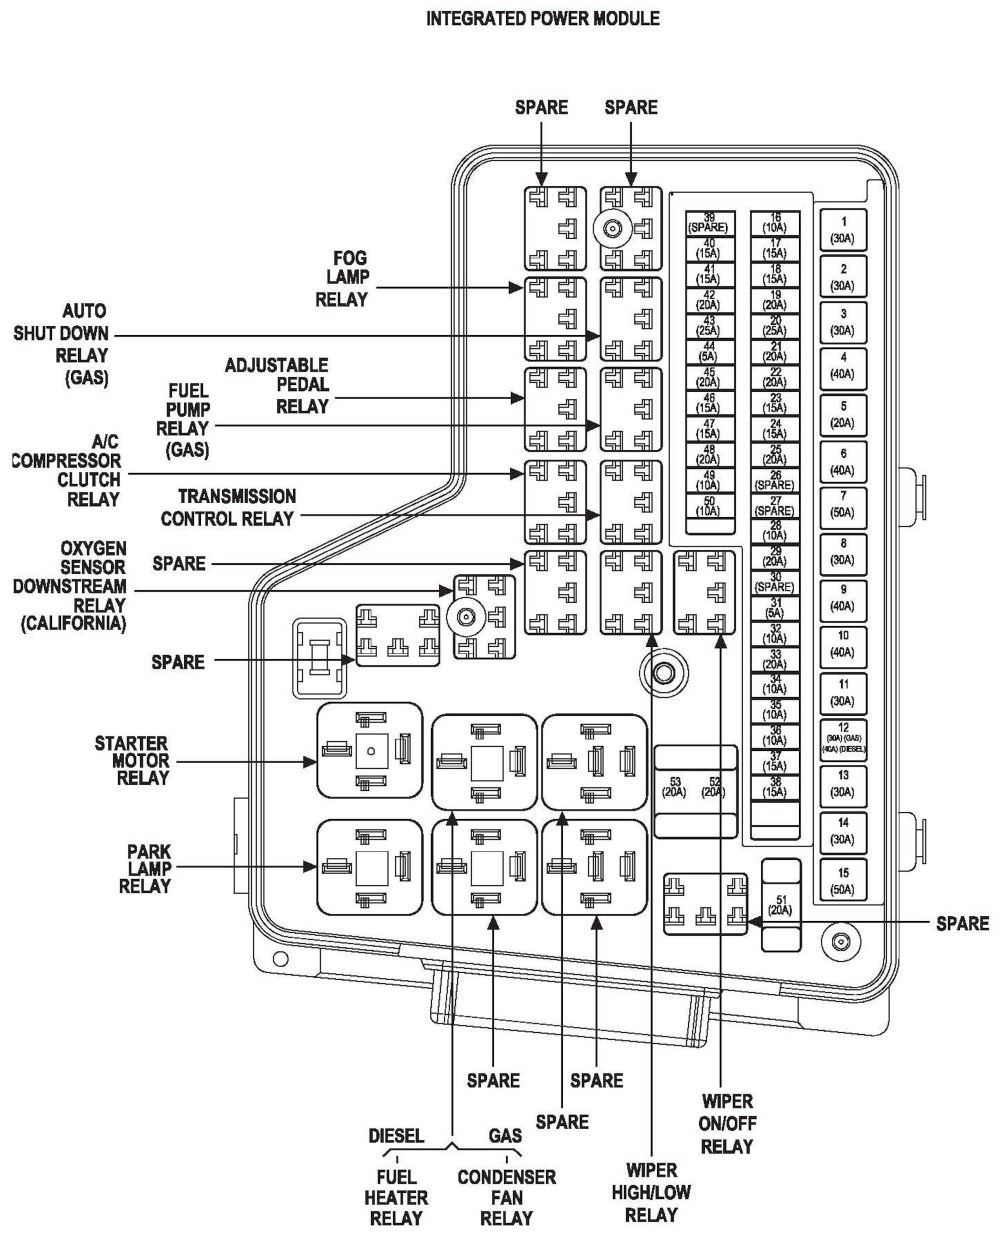 medium resolution of 98 dodge 3500 fuse diagram manual e book fuse box 2009 dodge ram 1500 fuse box dodge ram 1500